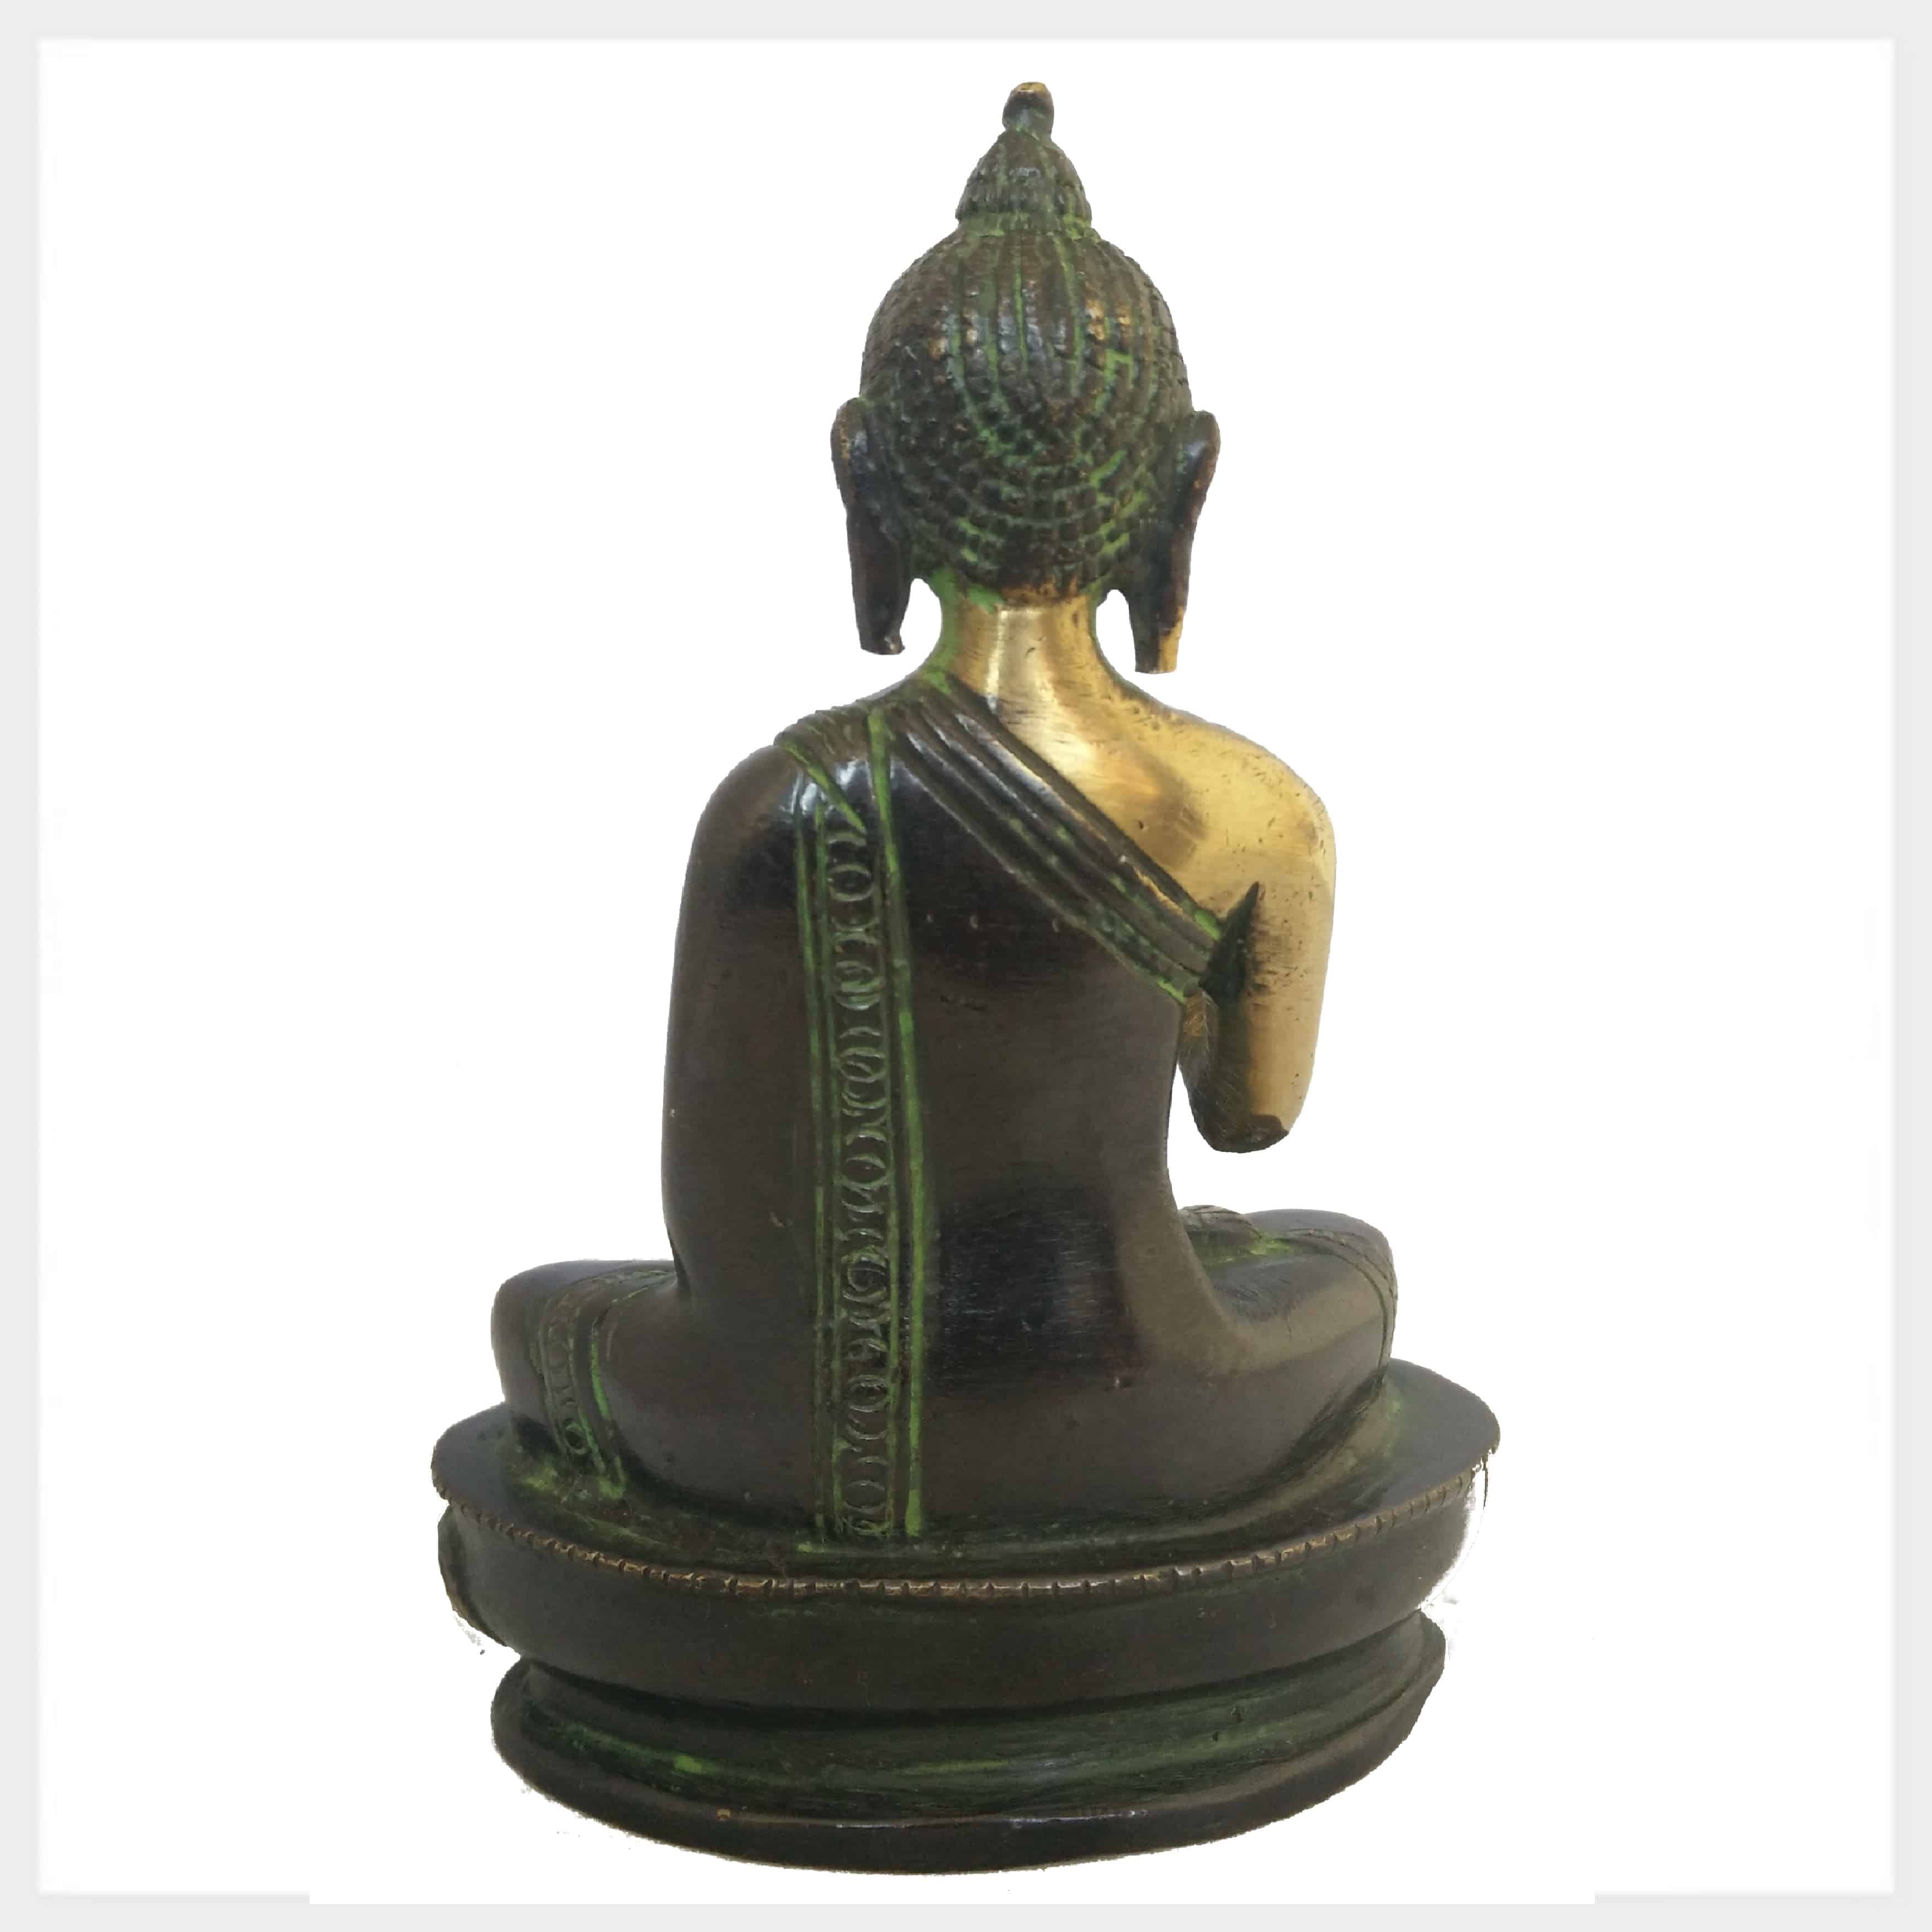 segnender buddha ca 12 cm messing figur nepal tibet indien buddhismus jnana mudra. Black Bedroom Furniture Sets. Home Design Ideas